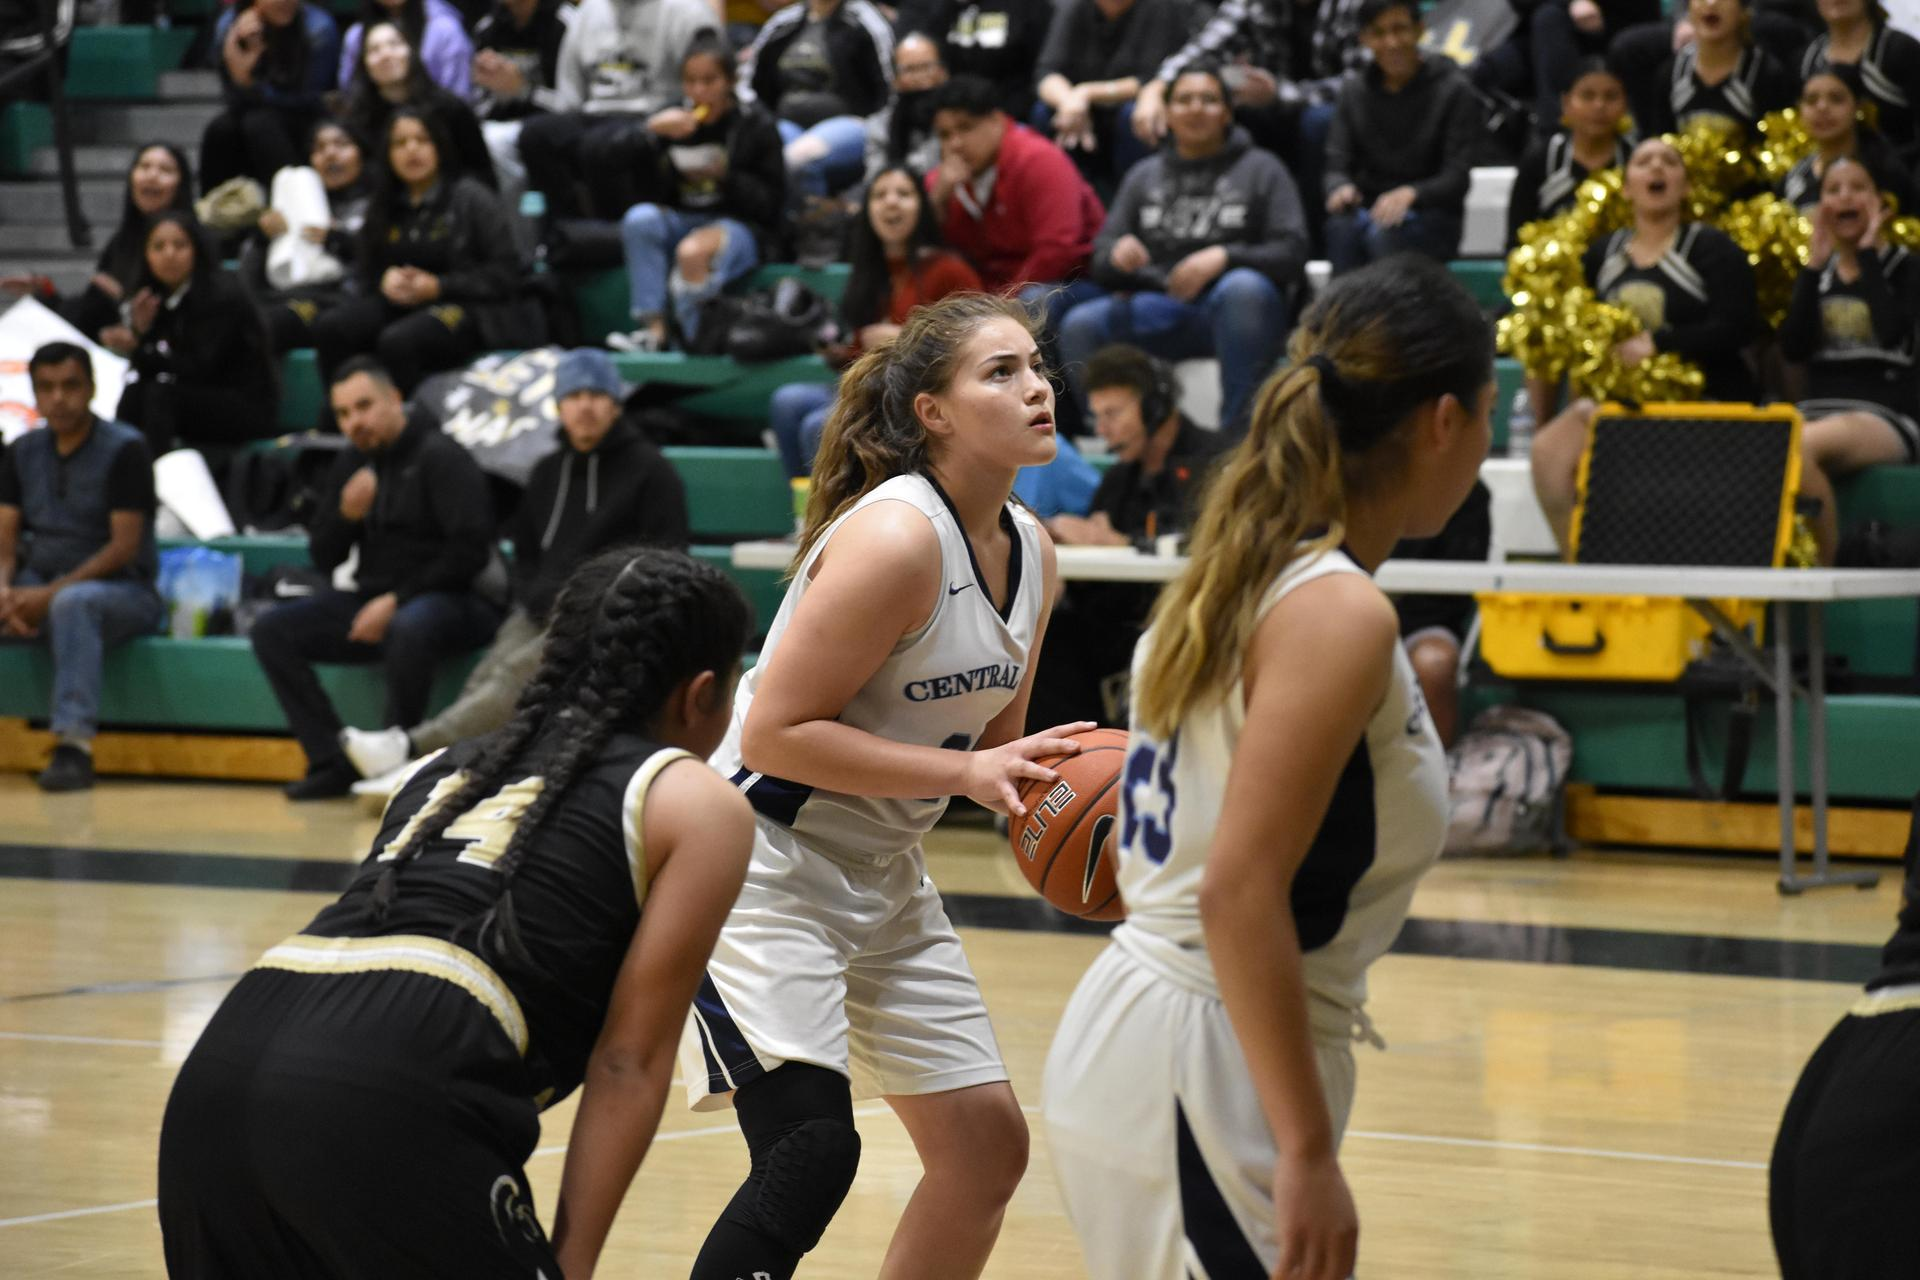 Jaguars Center Alix Dominguez takes a free throw in the CIF Los Angeles City Section Division III Finals vs Marquez